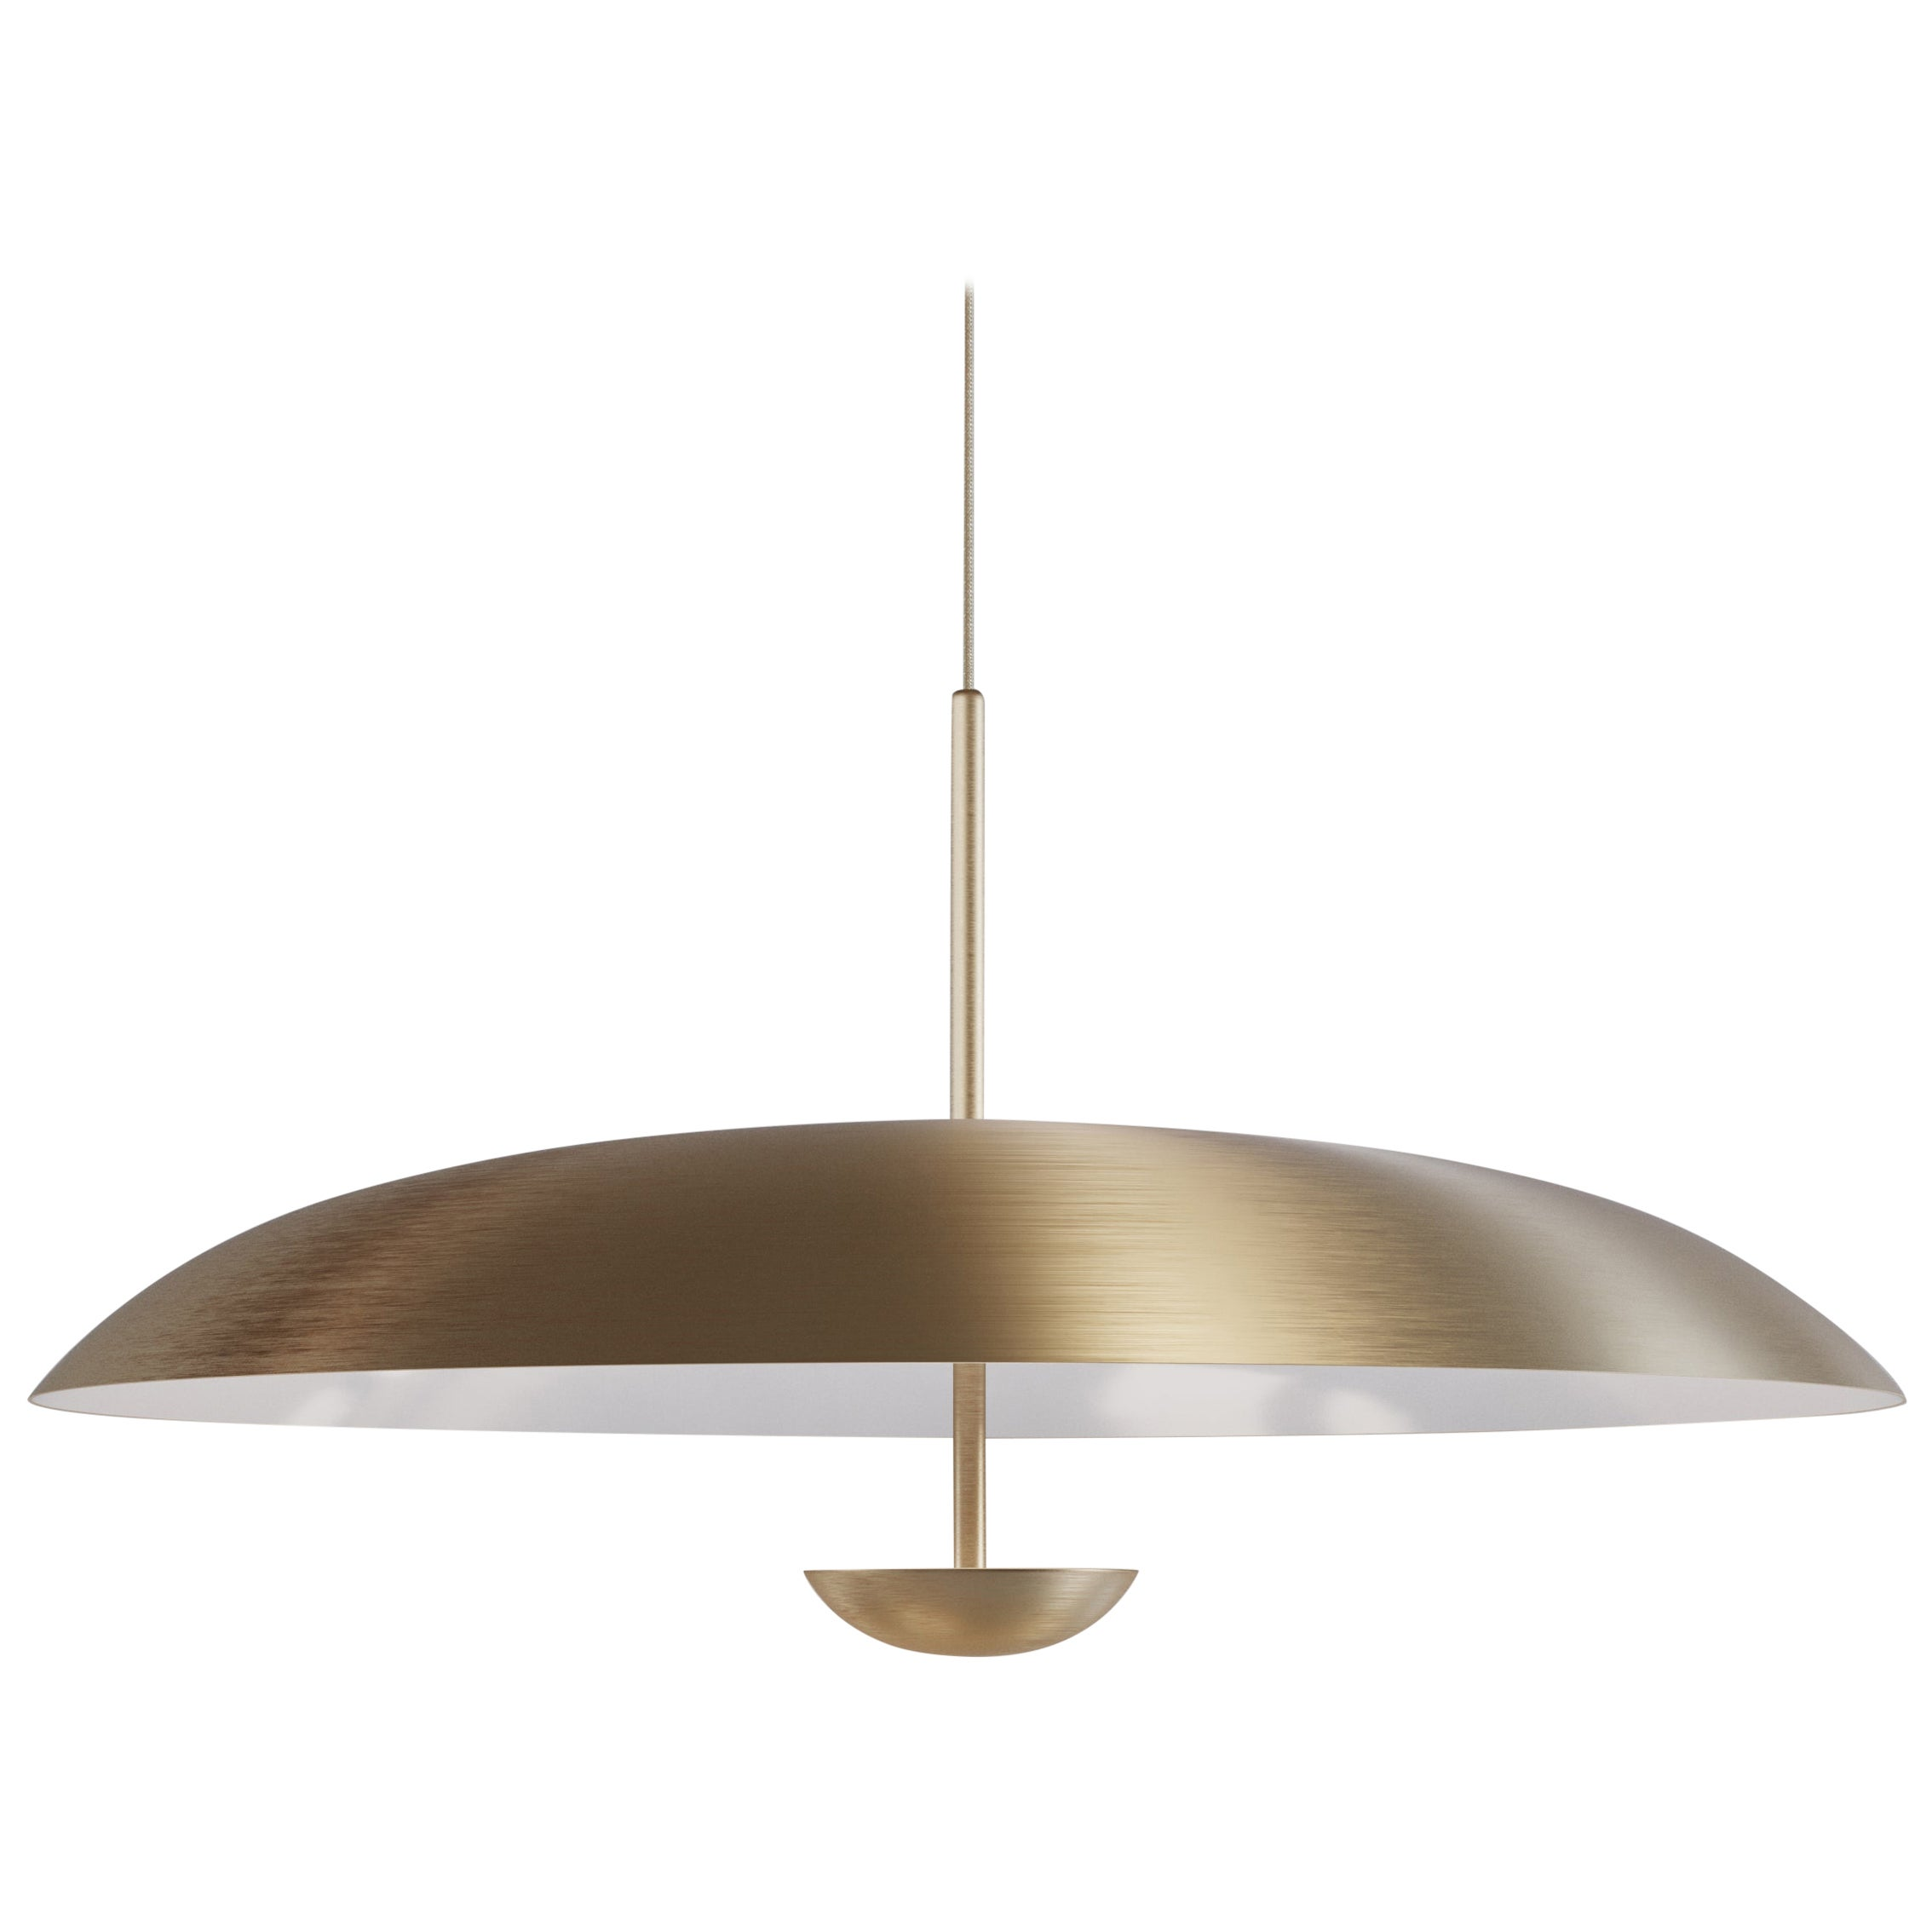 'Cosmic Purion Pendant' White Lacquered Satin Brass Ceiling Lamp